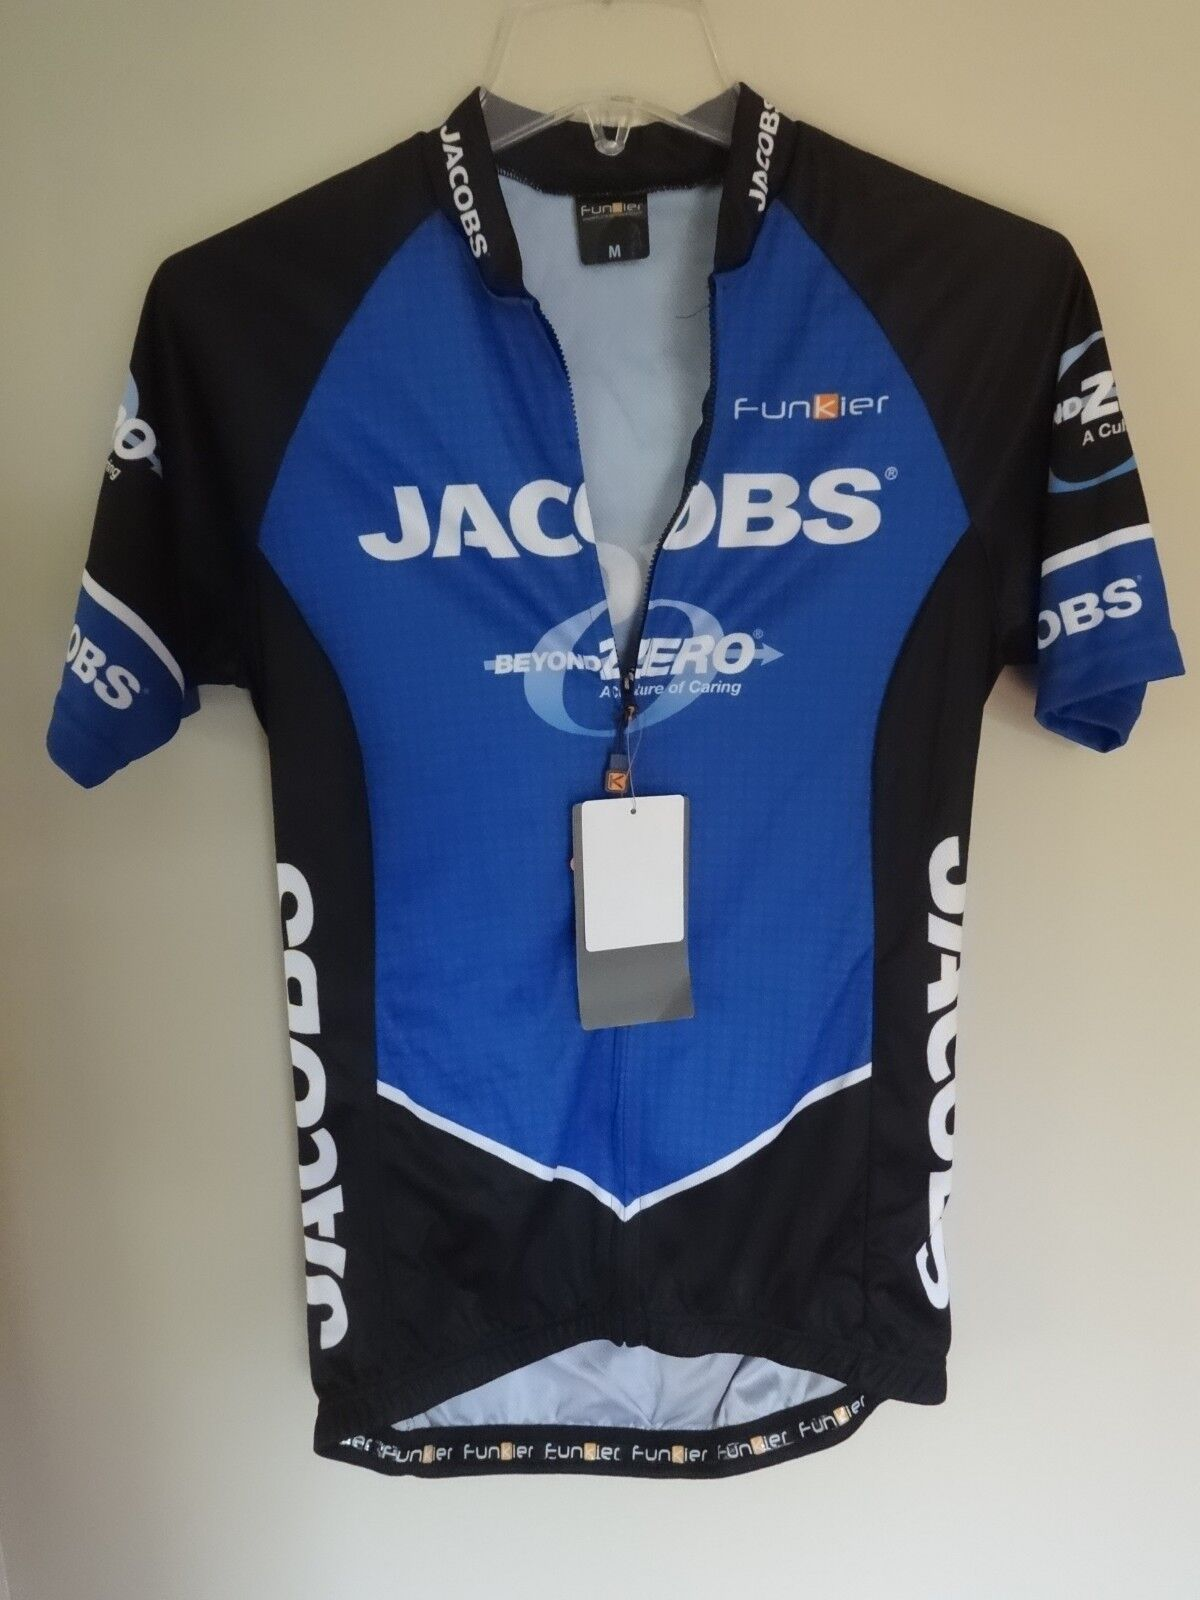 NWT Jacobs Full Zip Cycling Bike Jersey  Shirt Women M Premium Jersey by Funkier  is discounted